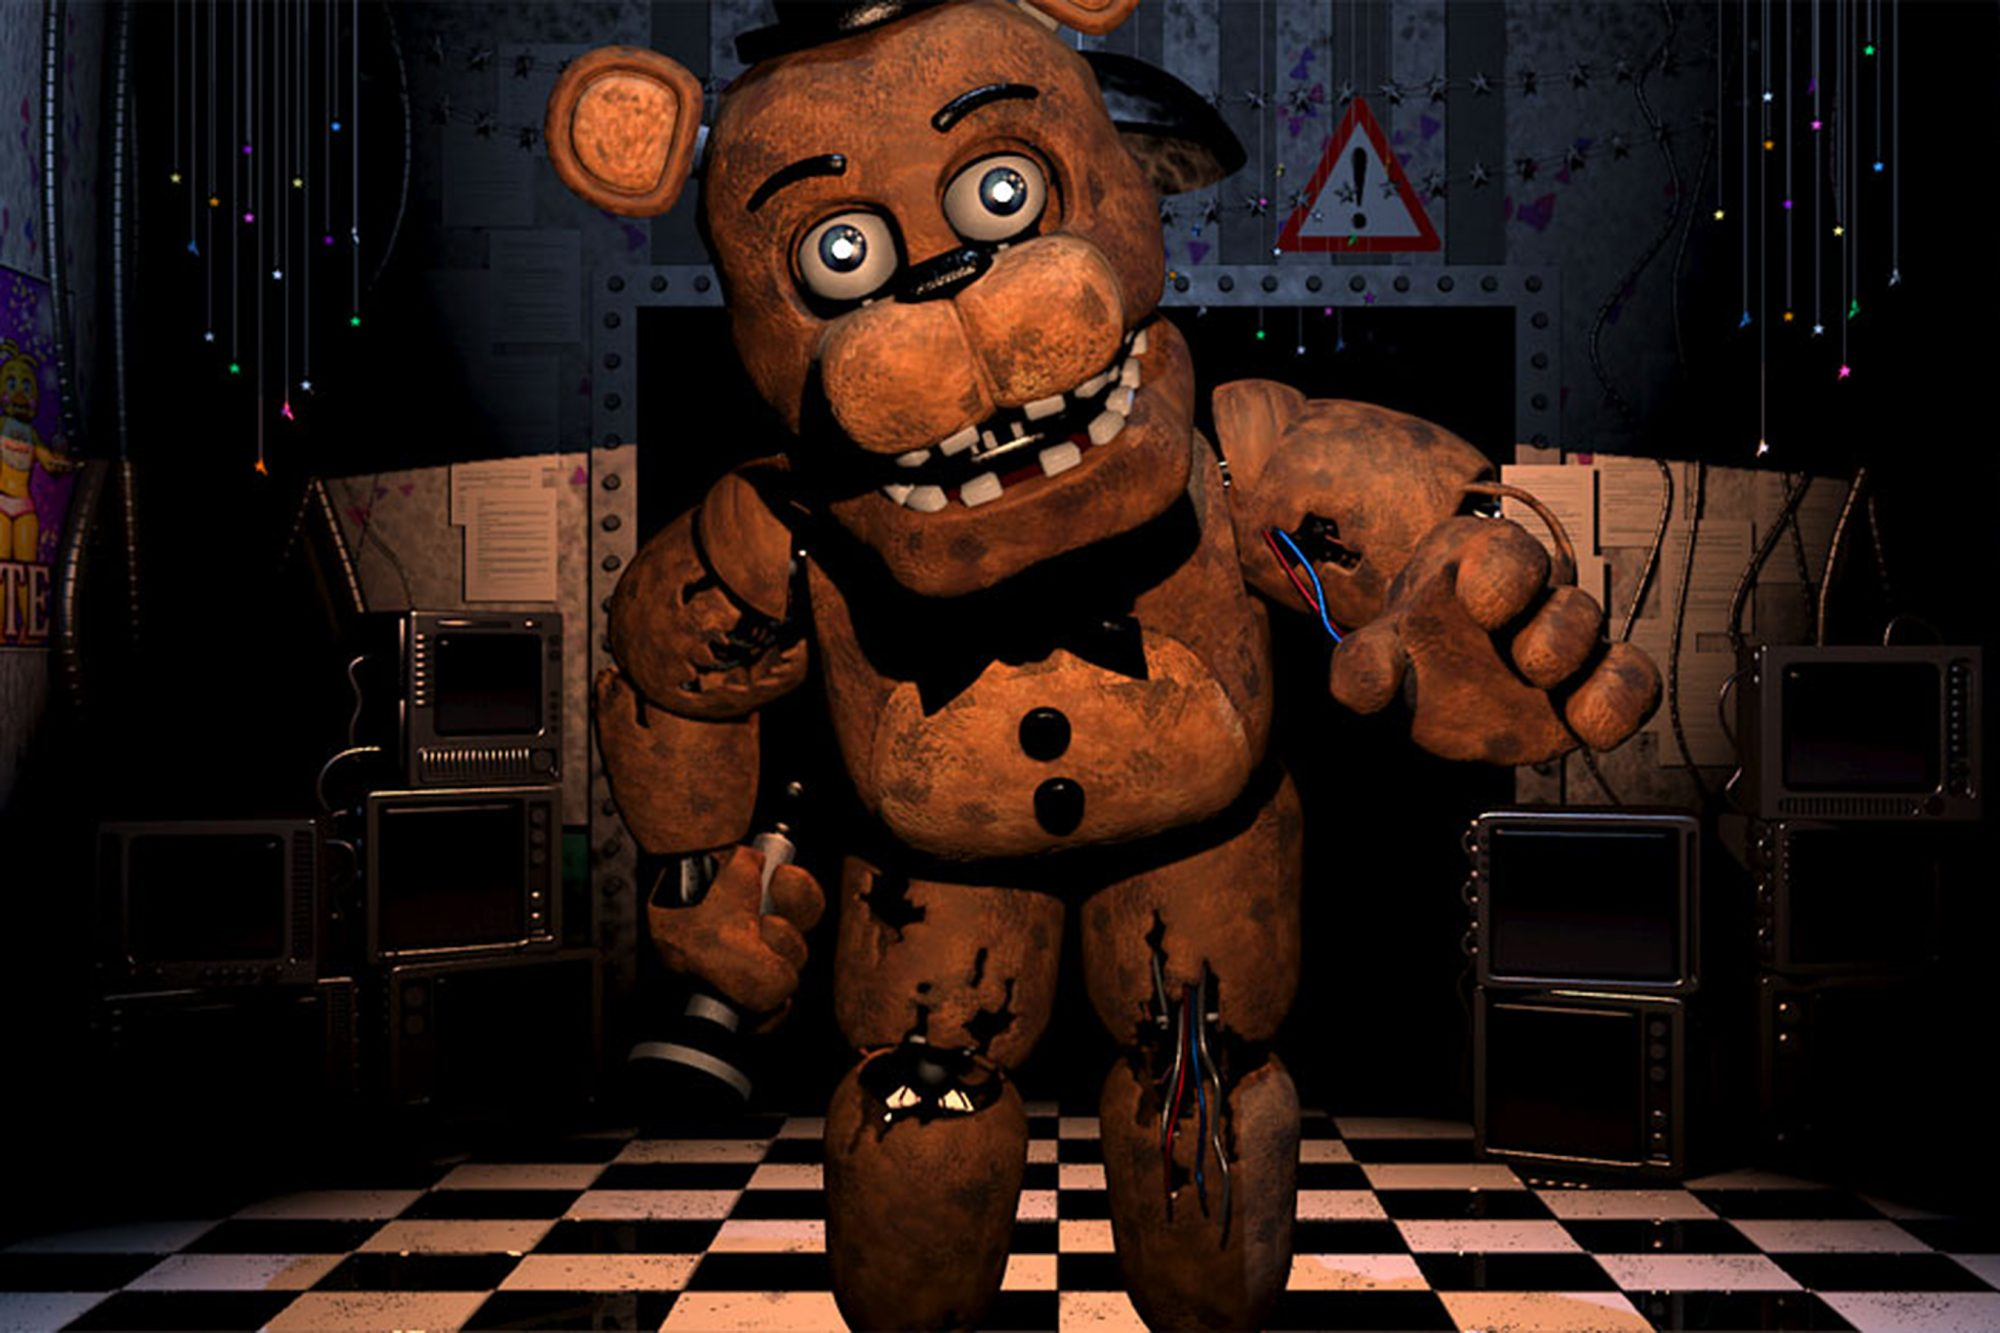 Five Nights at Freddy's video game